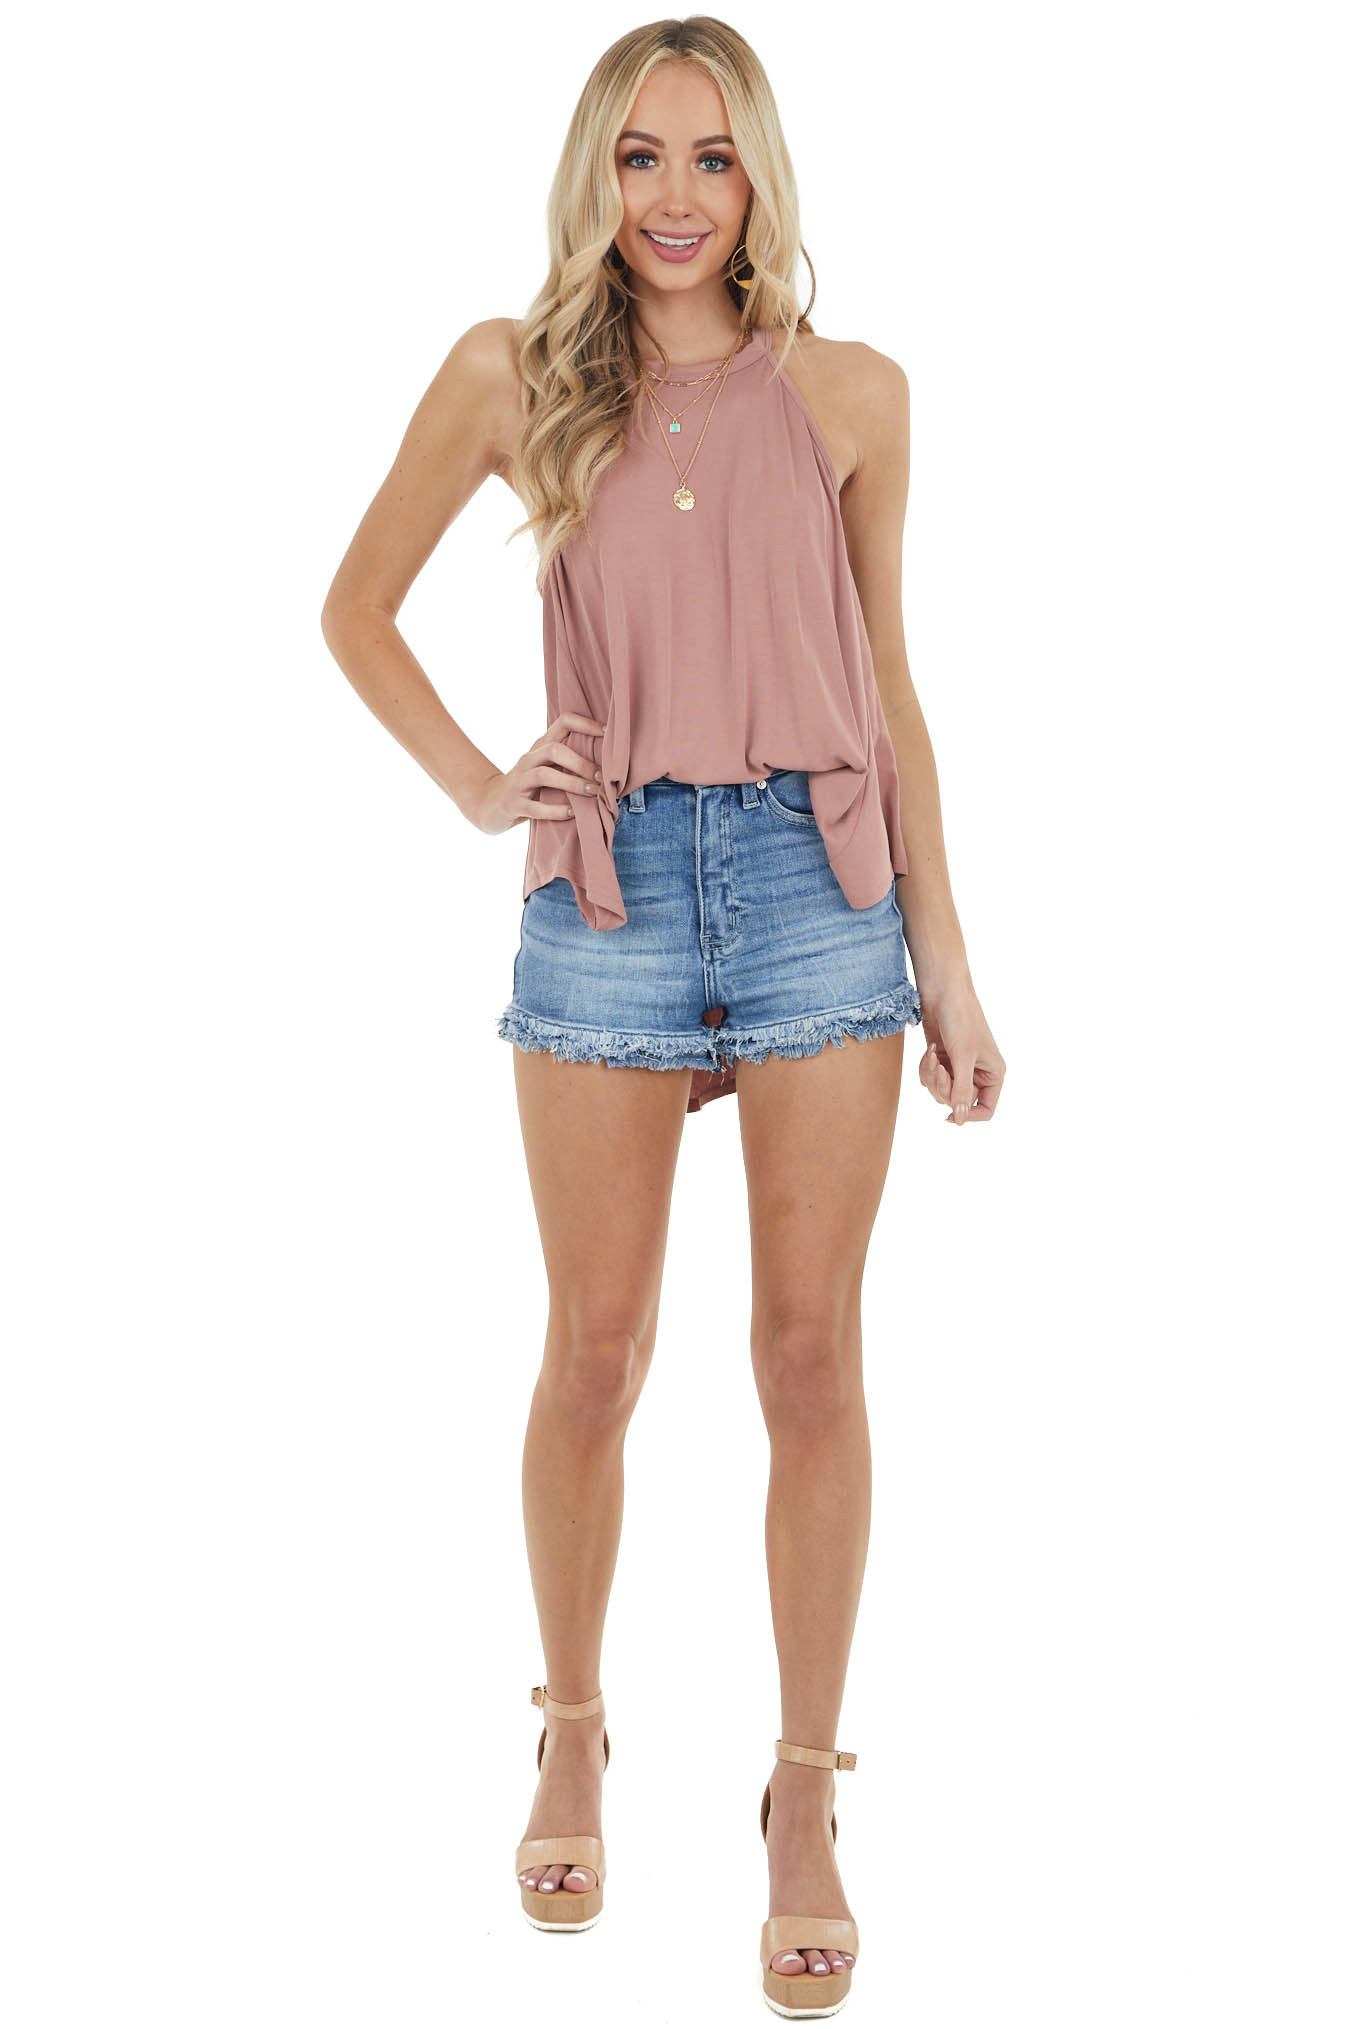 Dusty Rose Sleeveless Soft Knit Top with Halter Neckline